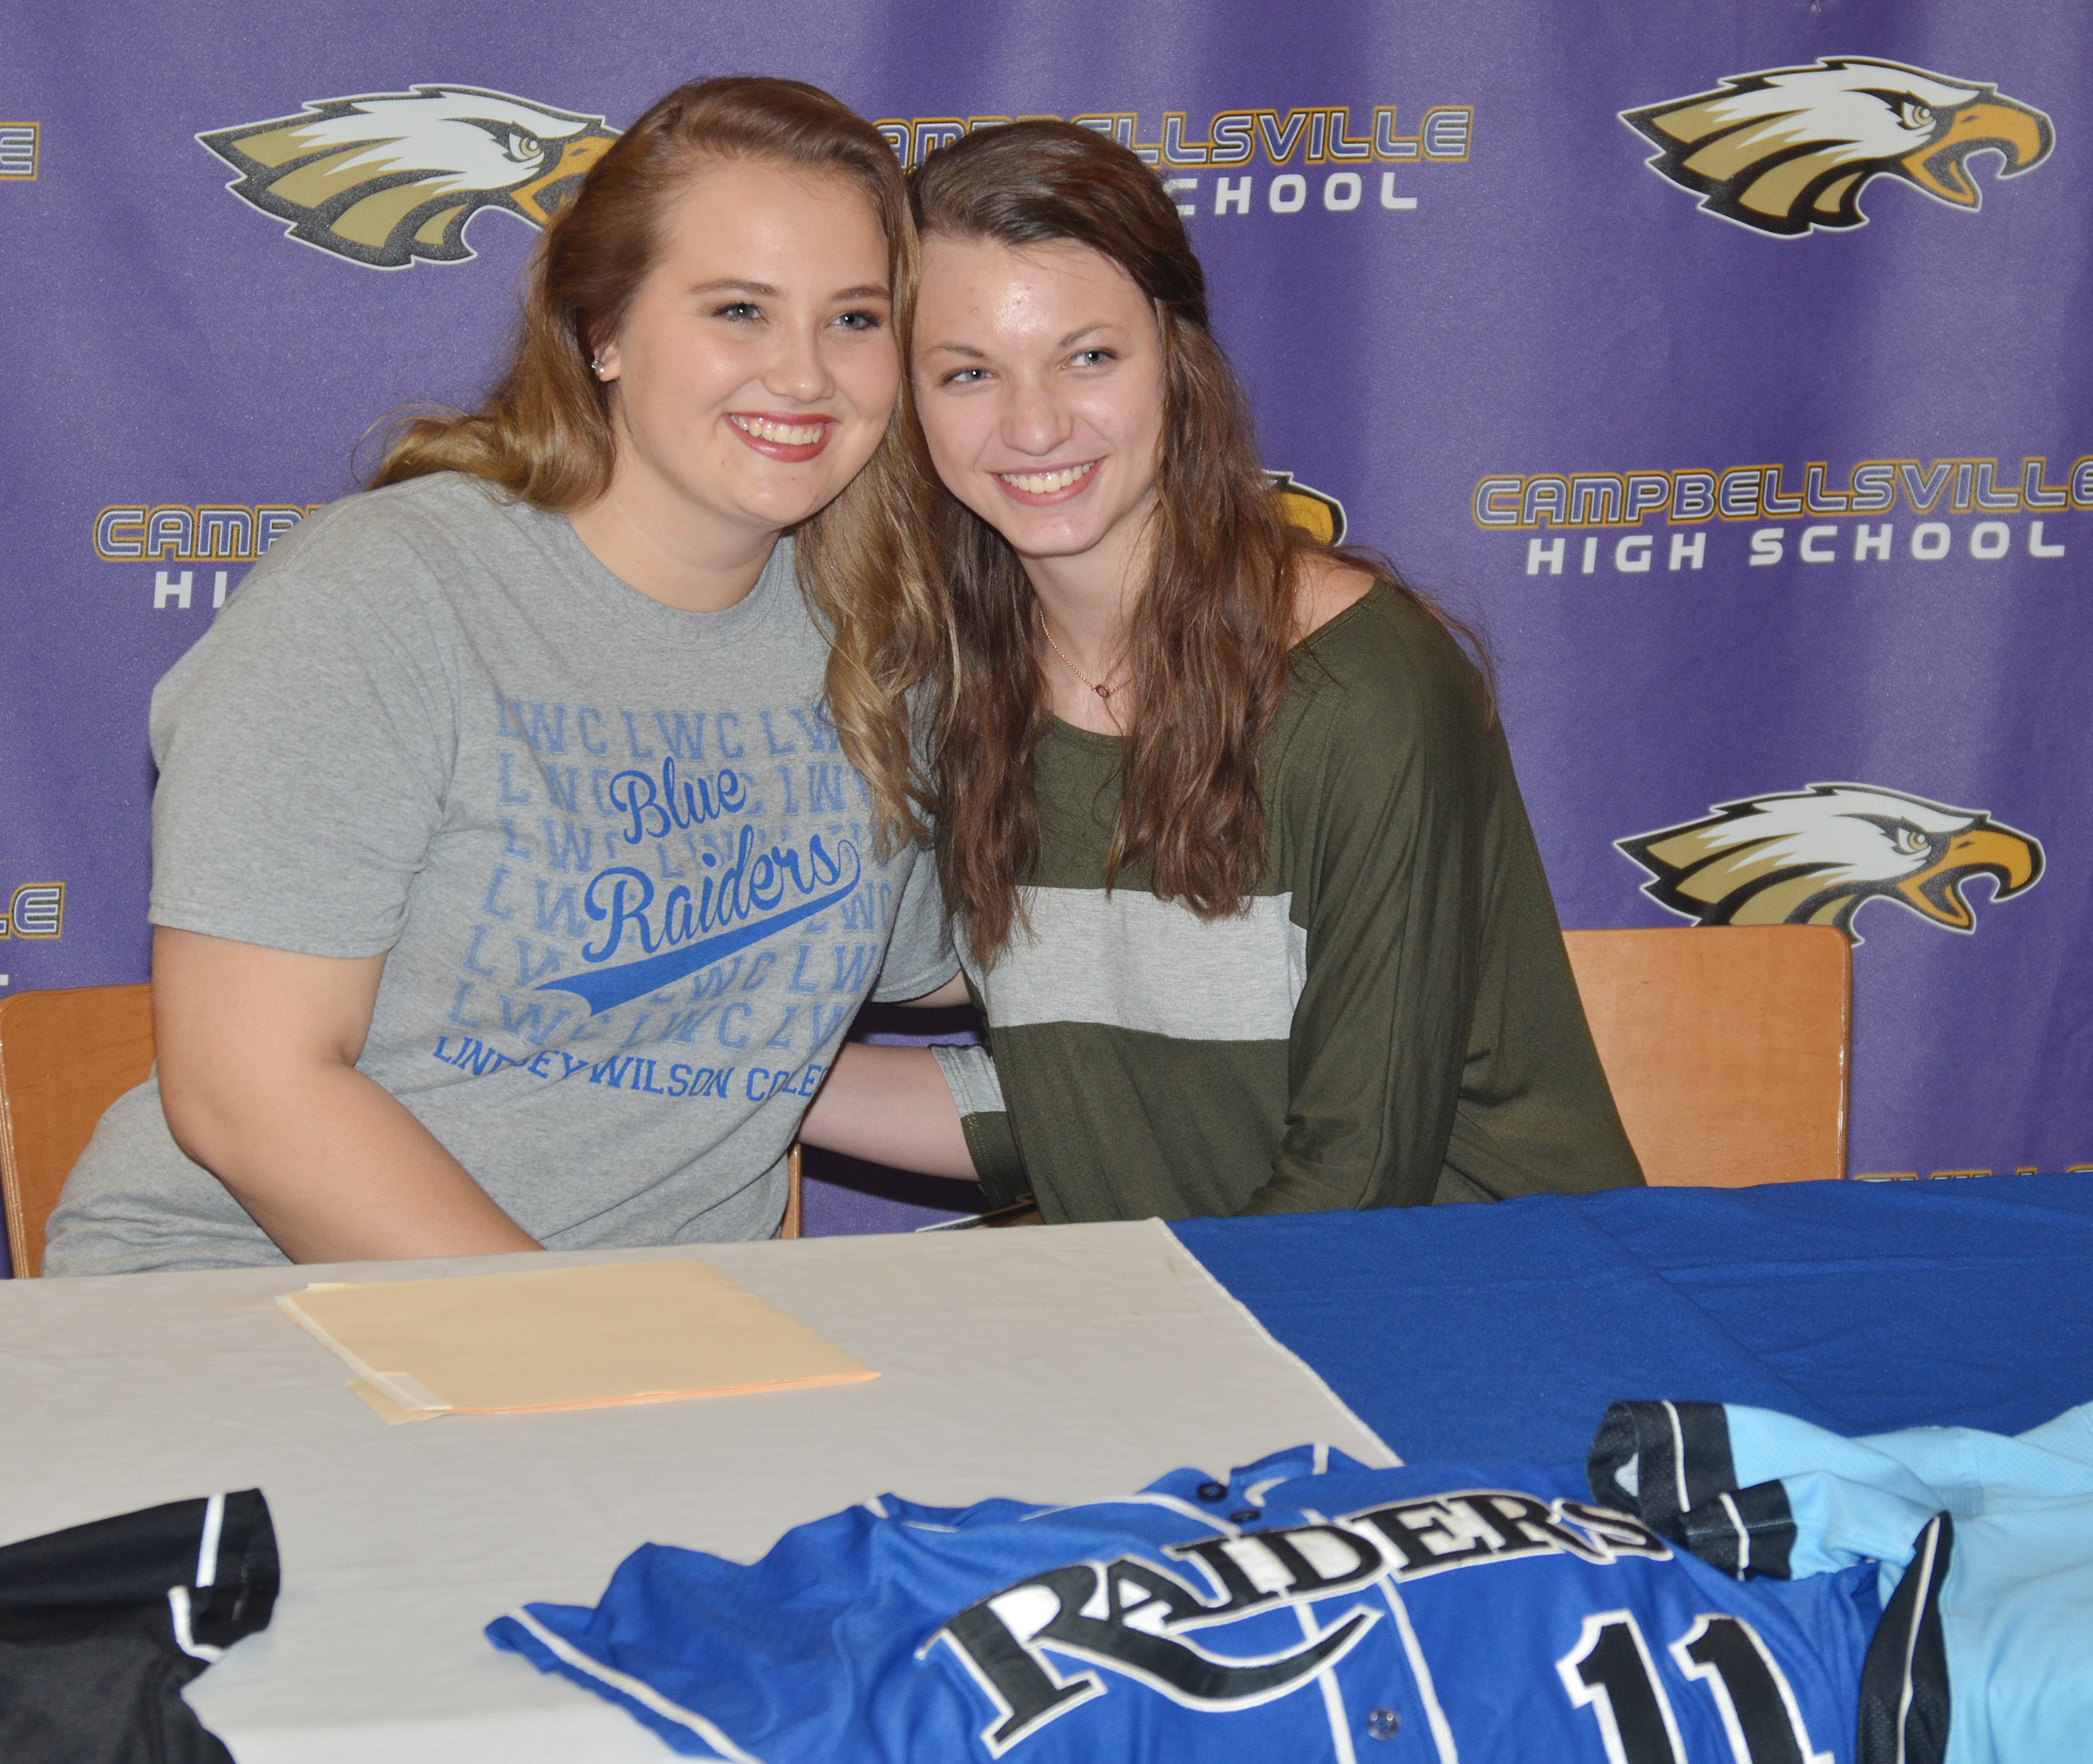 CHS senior Brenna Wethington has signed to continue her softball career at Lindsey Wilson College. She is pictured with her fellow CHS girls' basketball senior Caylie Blair.